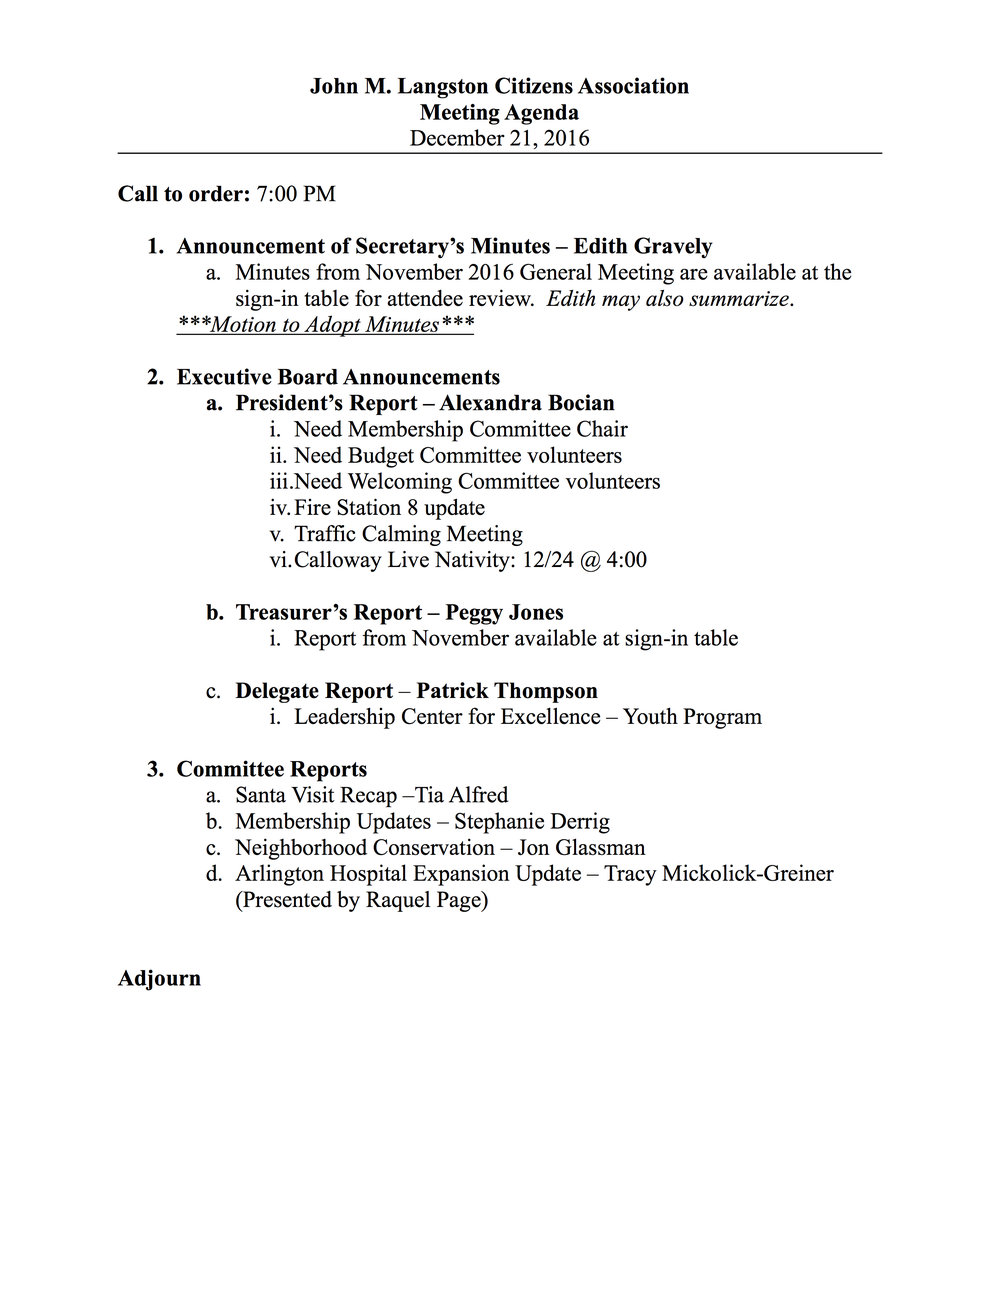 dec16-meeting-agenda